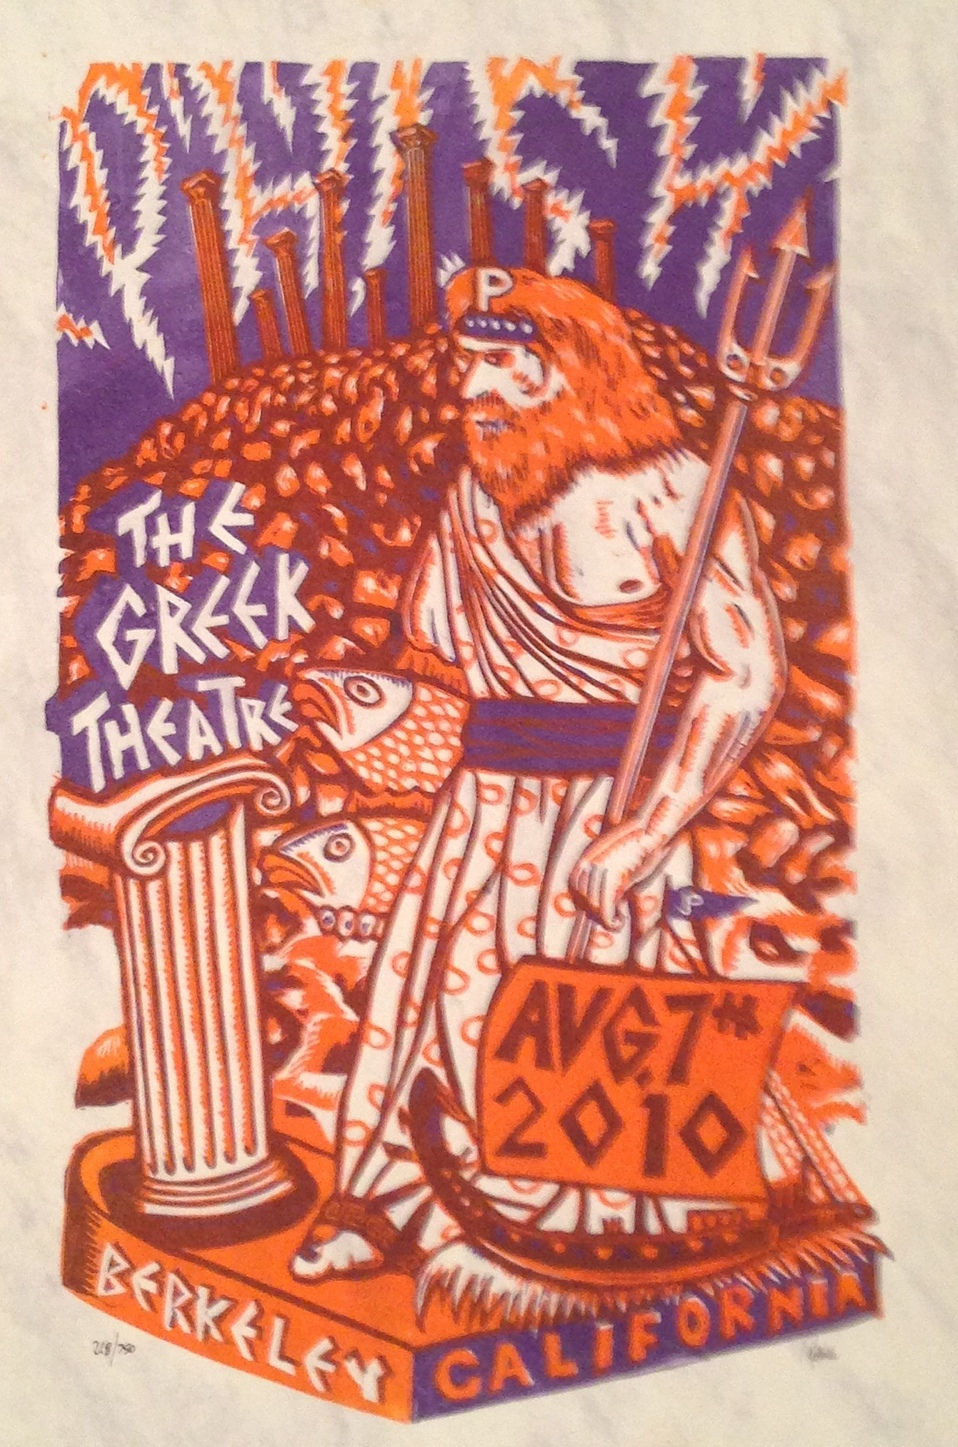 JIM POLLOCK  |  Phish - Greek Theatre